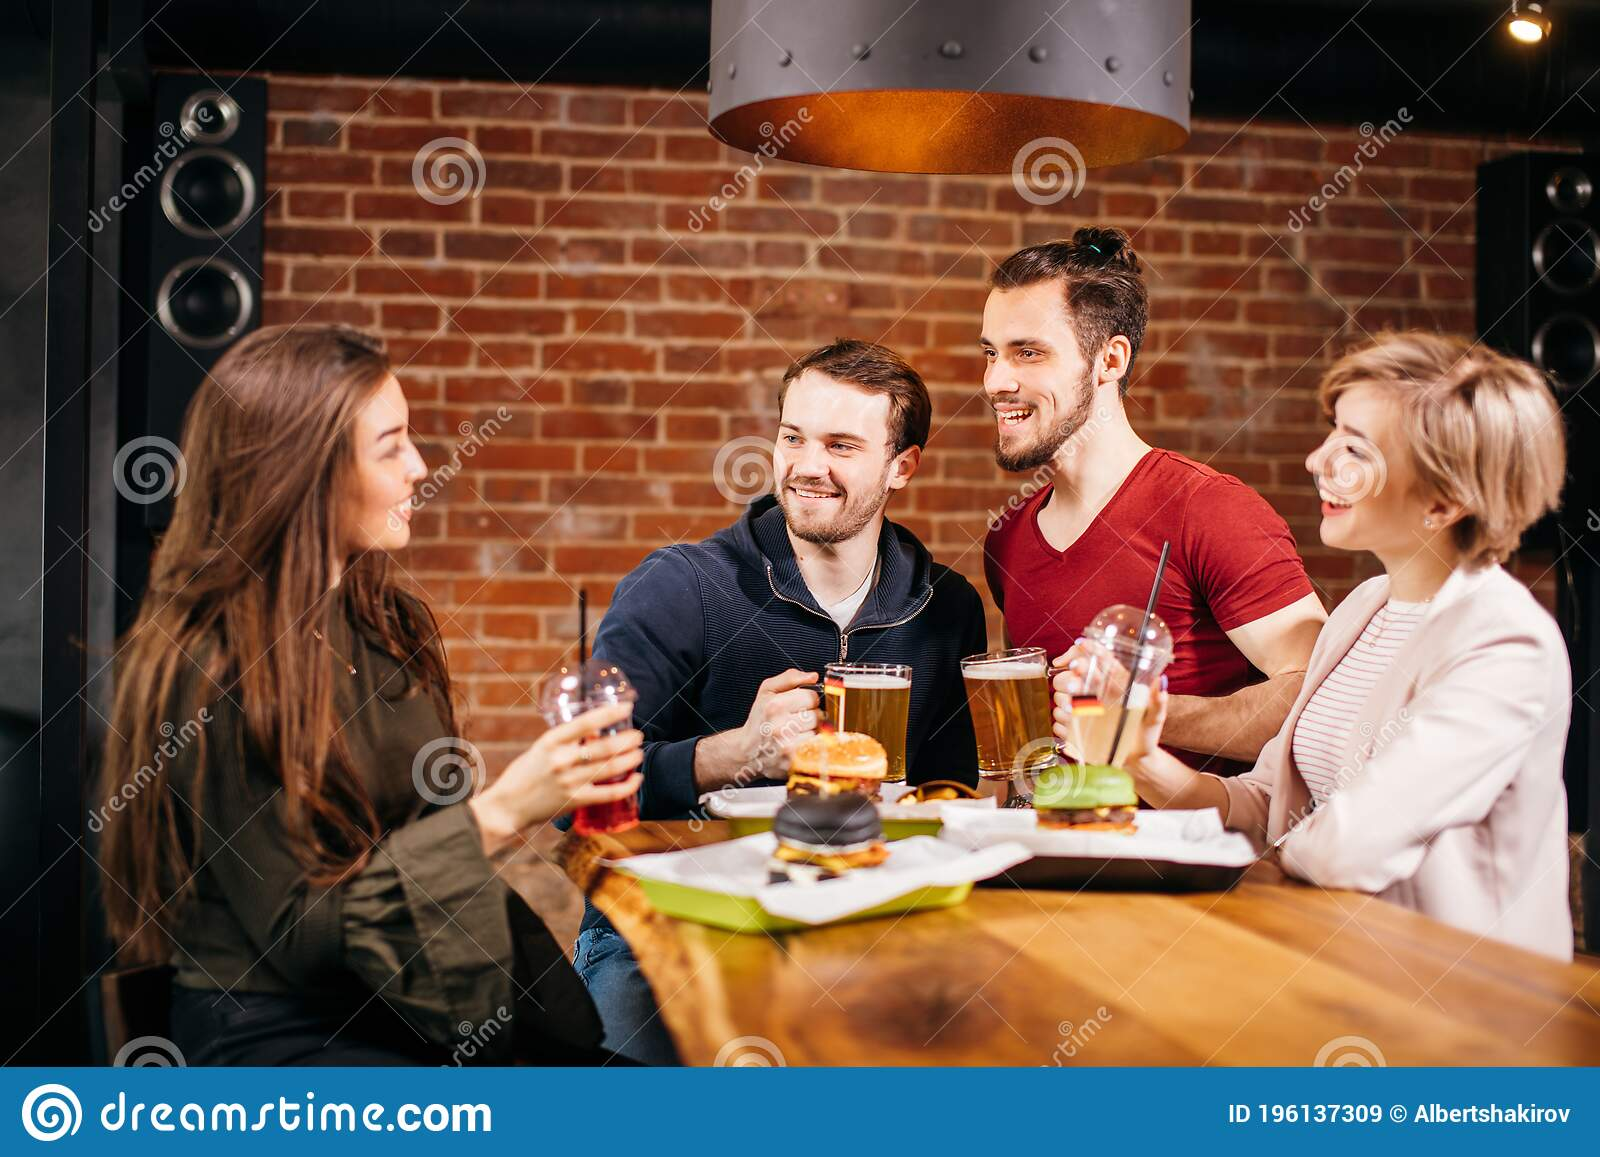 Group Of Mates Enjoying Night Out At Burger Bar Stock Image Image Of Happy Horizontal 196137309